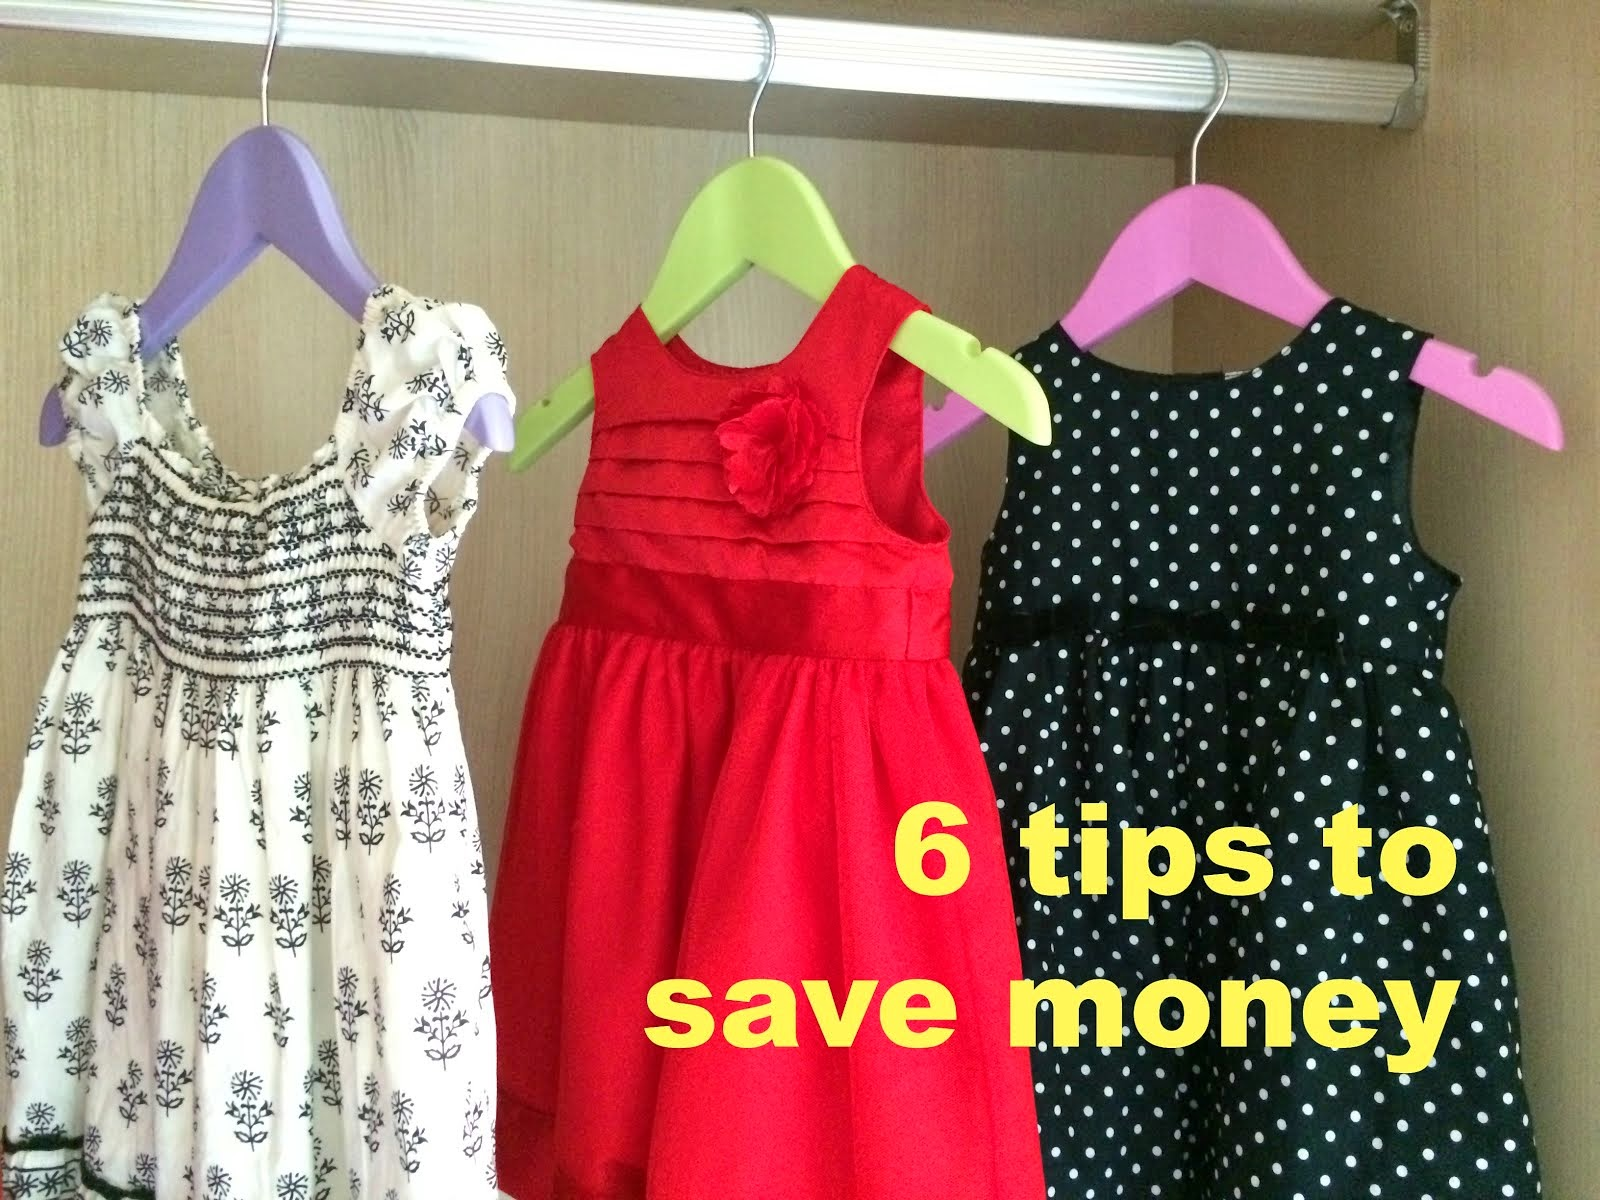 HOW TO SAVE ON TOYS, CLOTHES, FOOD, TUTION & VACATIONS